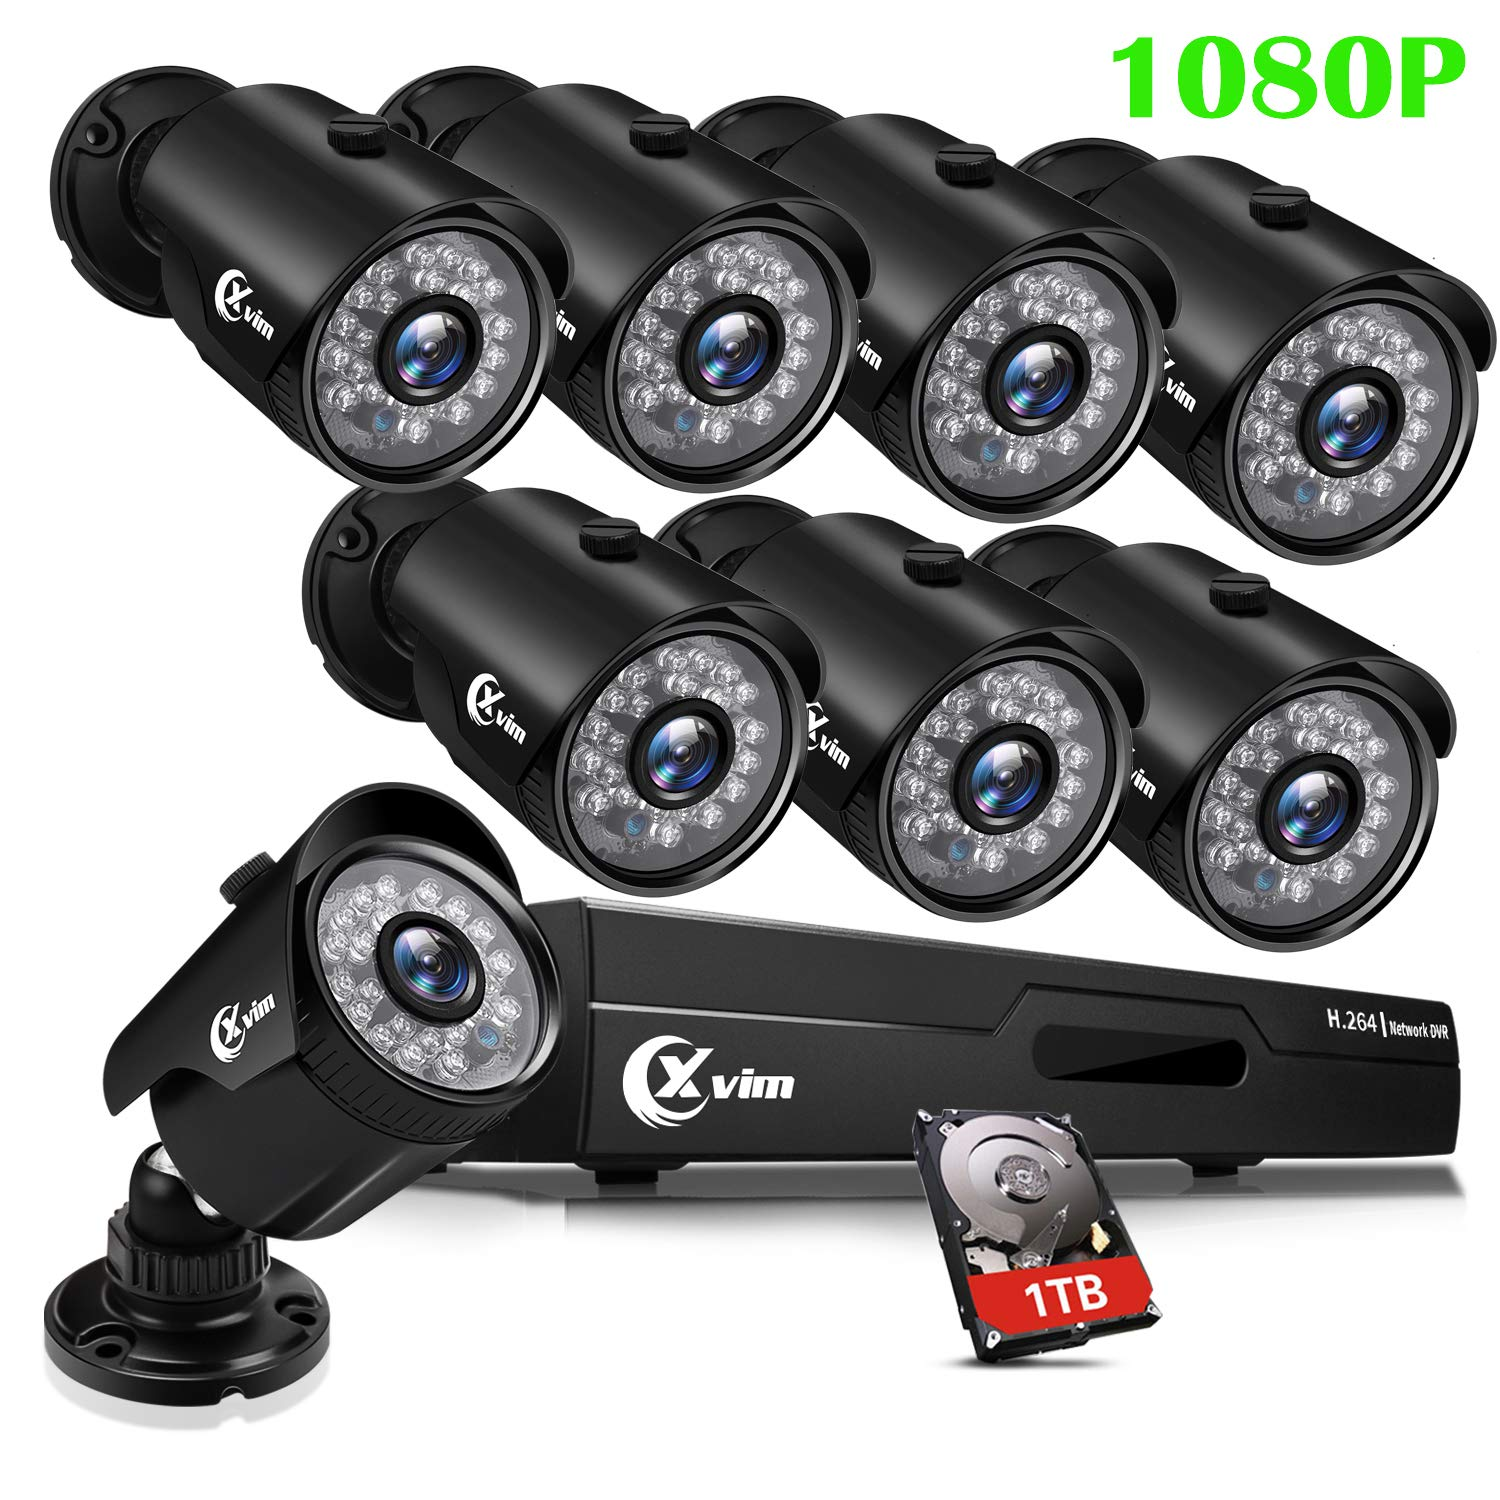 XVIM 8CH 1080P Security Camera System Outdoor with 1TB Hard Drive Pre-Install CCTV Recorder 8pcs HD 1920TVL Upgrade Outdoor Home Surveillance Cameras with Night Vision Easy Remote Access Motion Alert by X-VIM